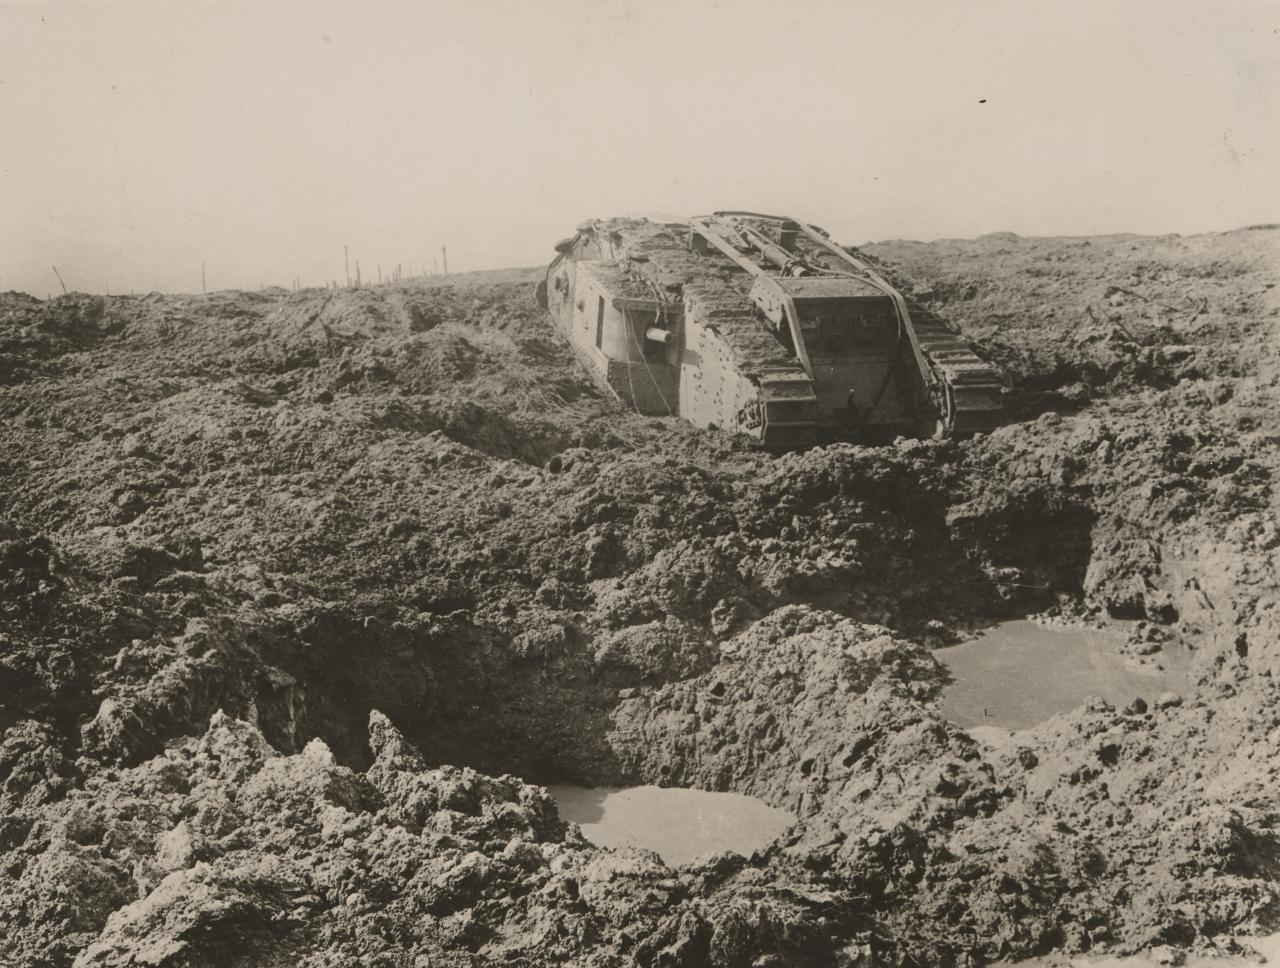 No title (Disabled tank in mud)